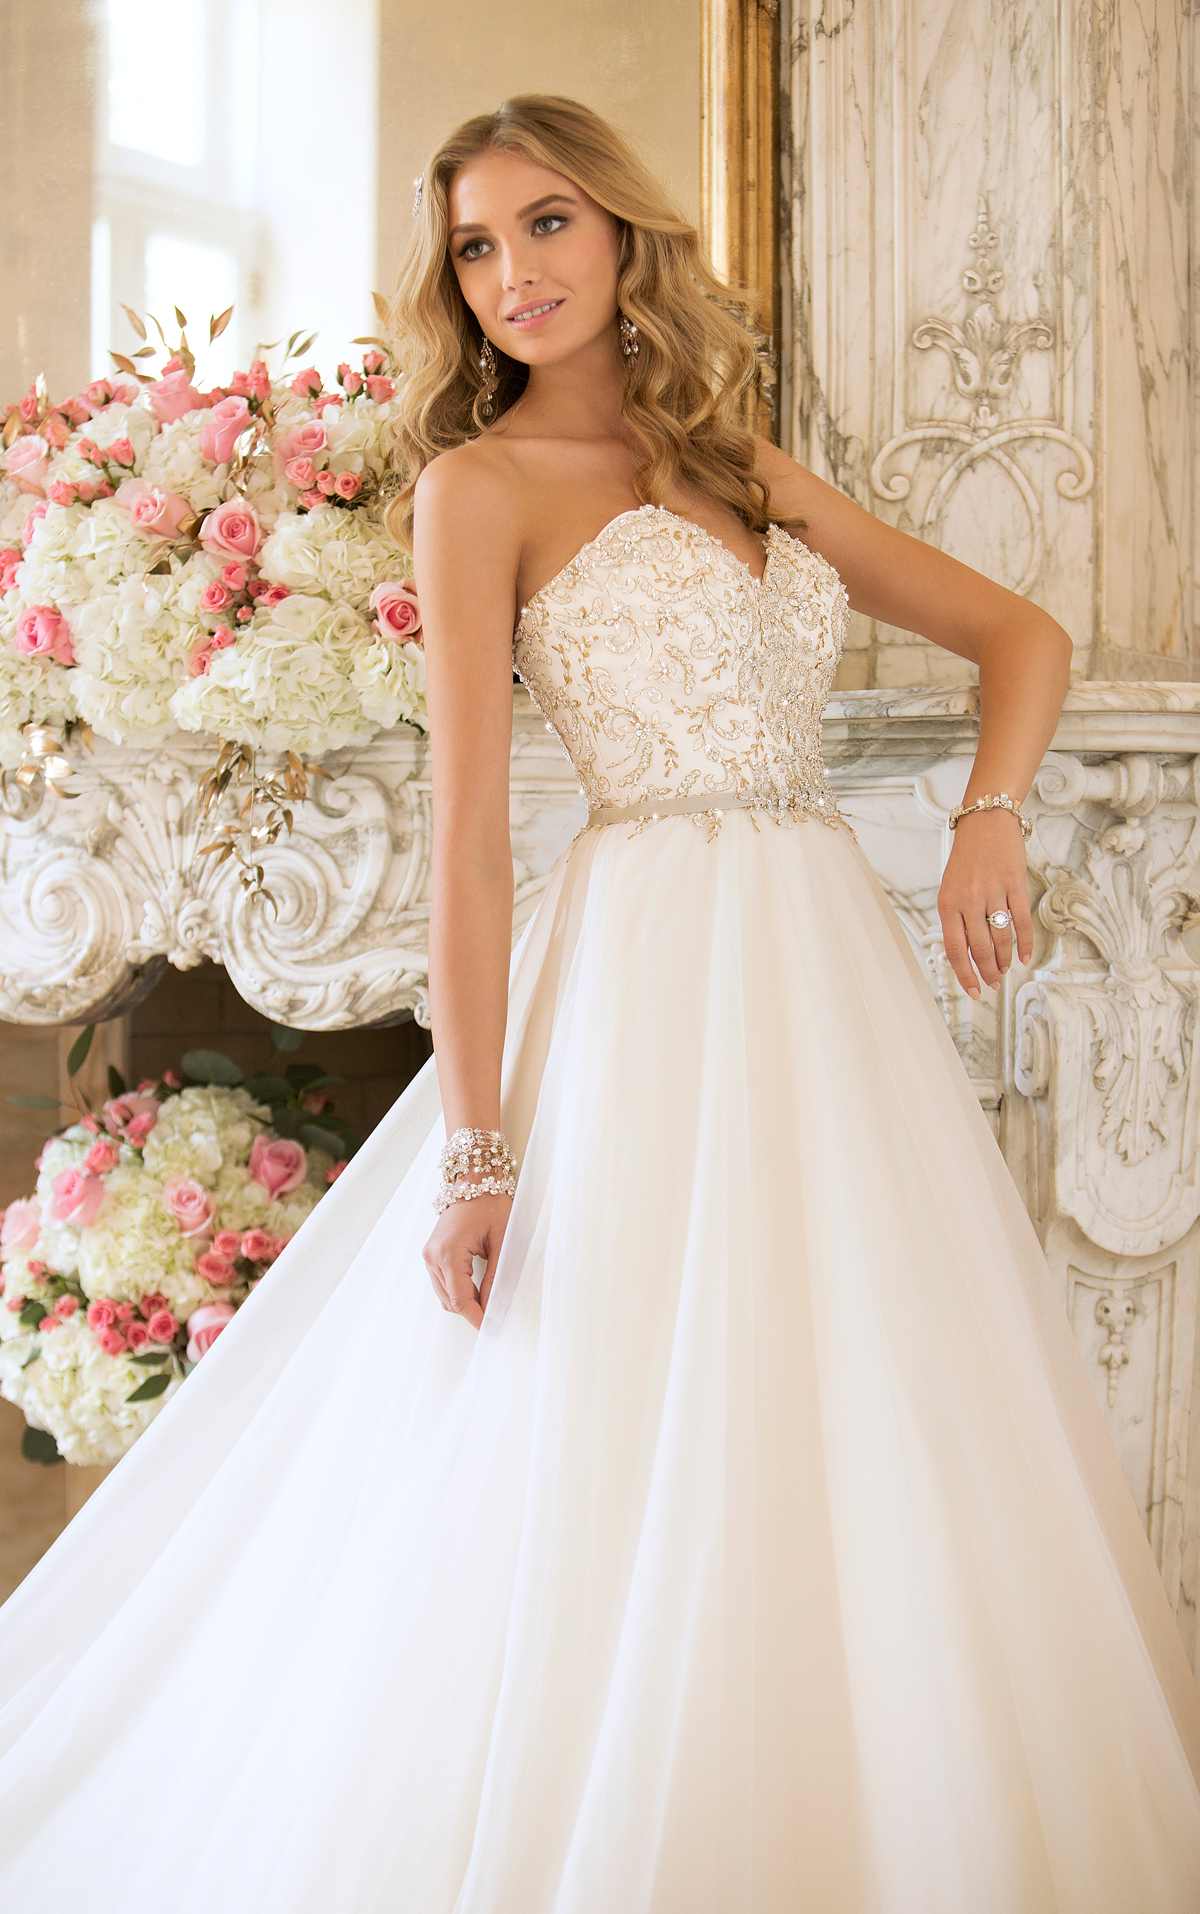 stella-york-wedding-dresses-2014-3-01162014